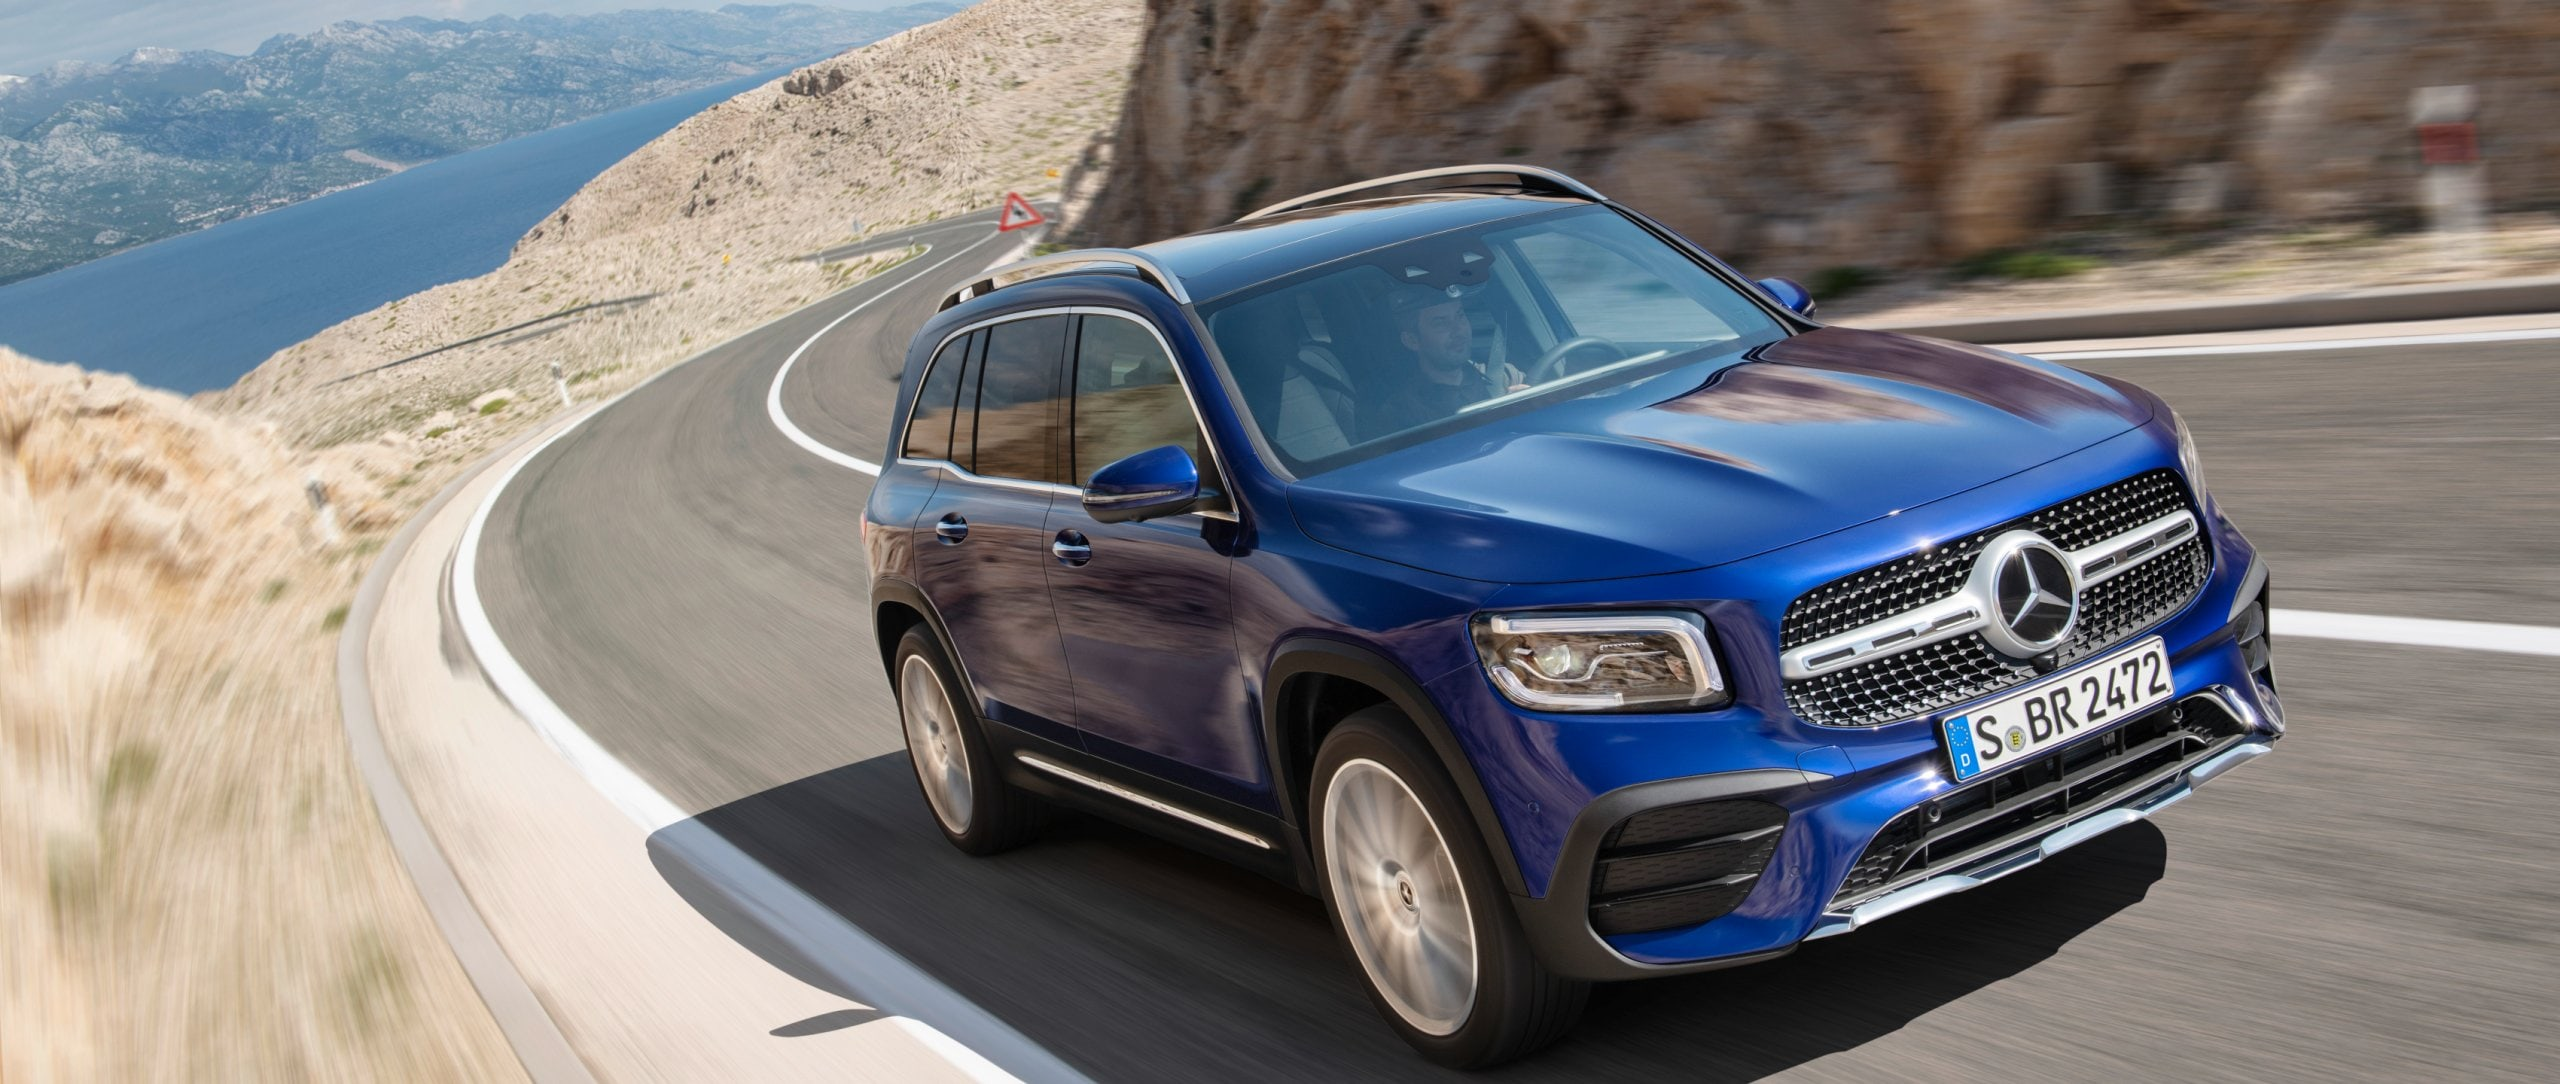 The new 2020 Mercedes-Benz GLB (X 247) in brilliant blue on a windy coastal road.